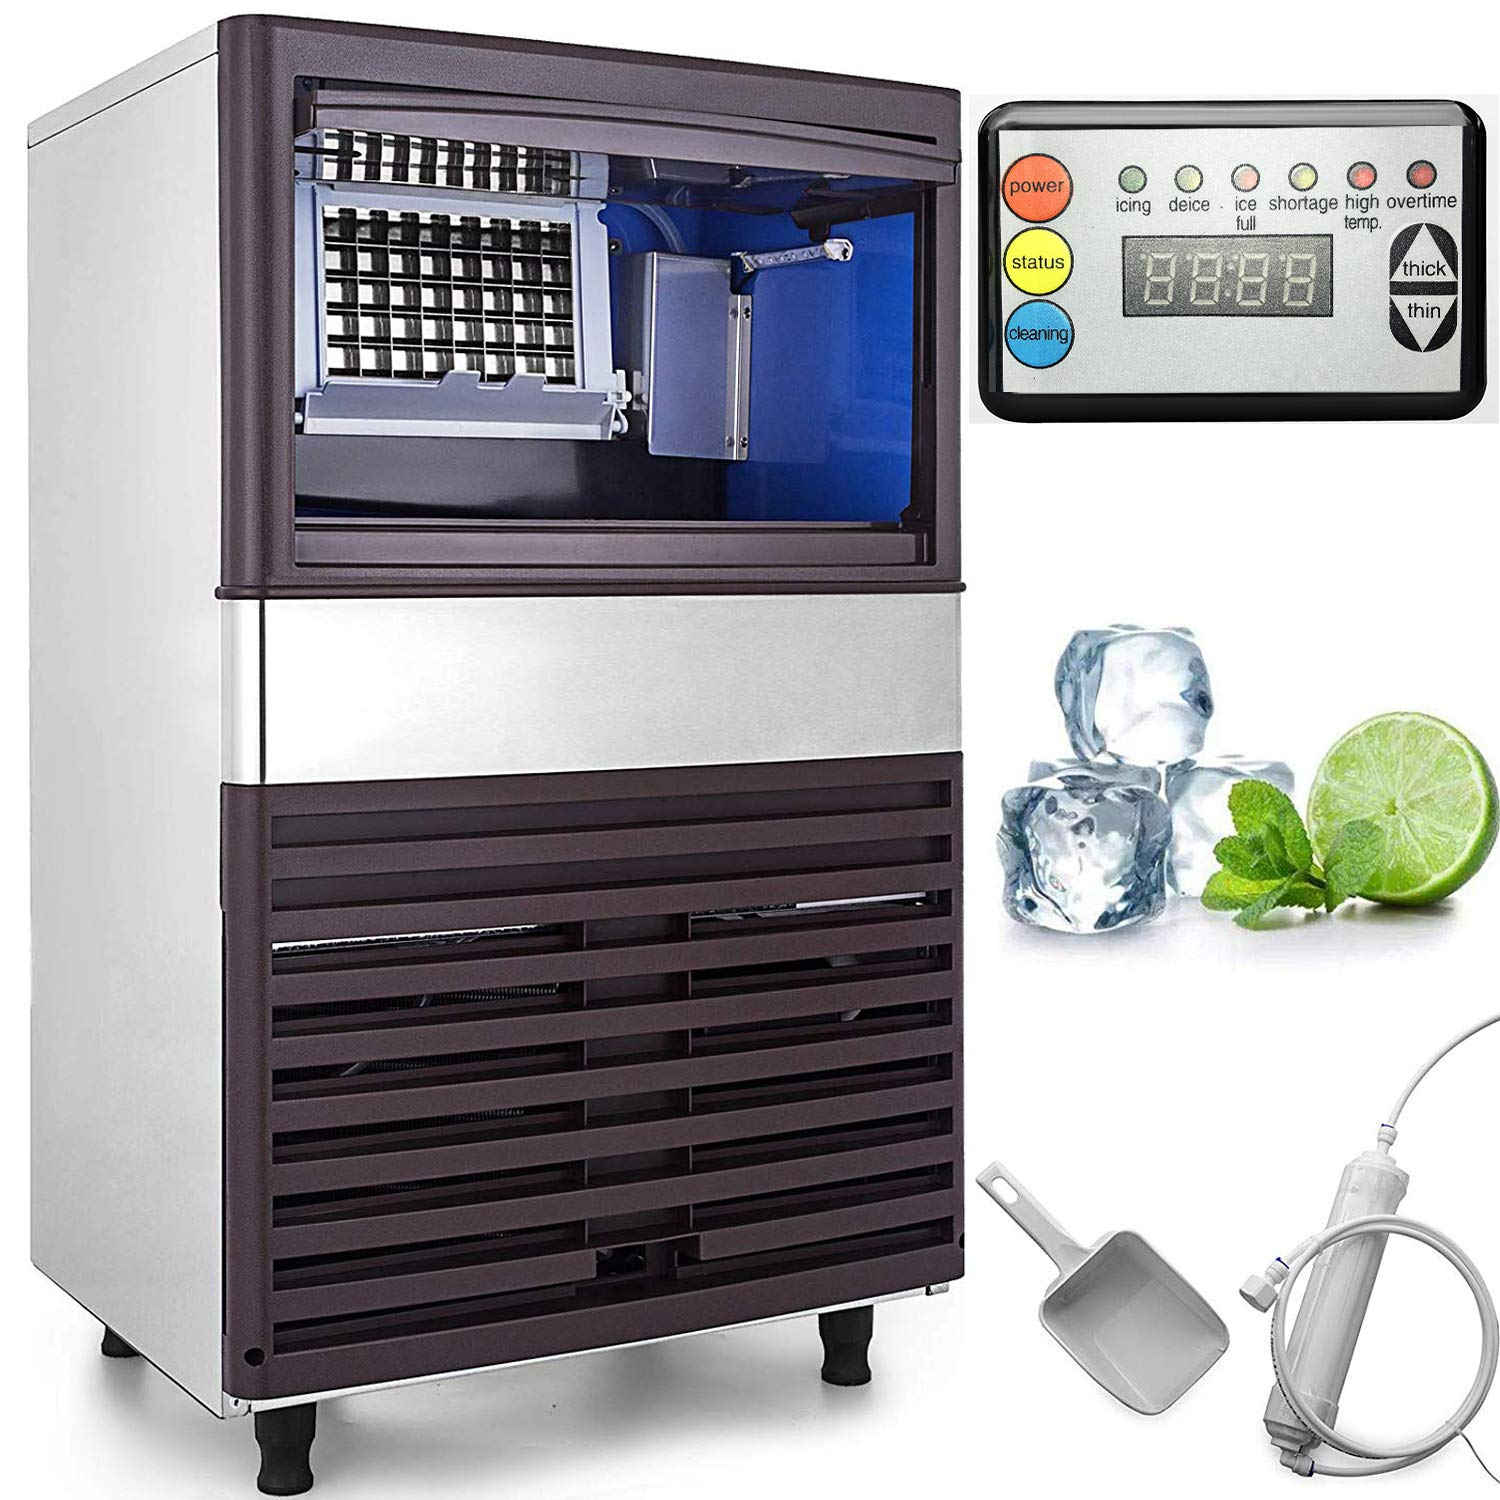 VEVOR 110V Commercial Ice Maker 155LBS/24H with 44lbs Storage Capacity Stainless Steel Commercial Ice Machine 55 Ice Cubes Per Plate Industrial Ice Maker Machine Auto Clean for Bar Home Supermarkets